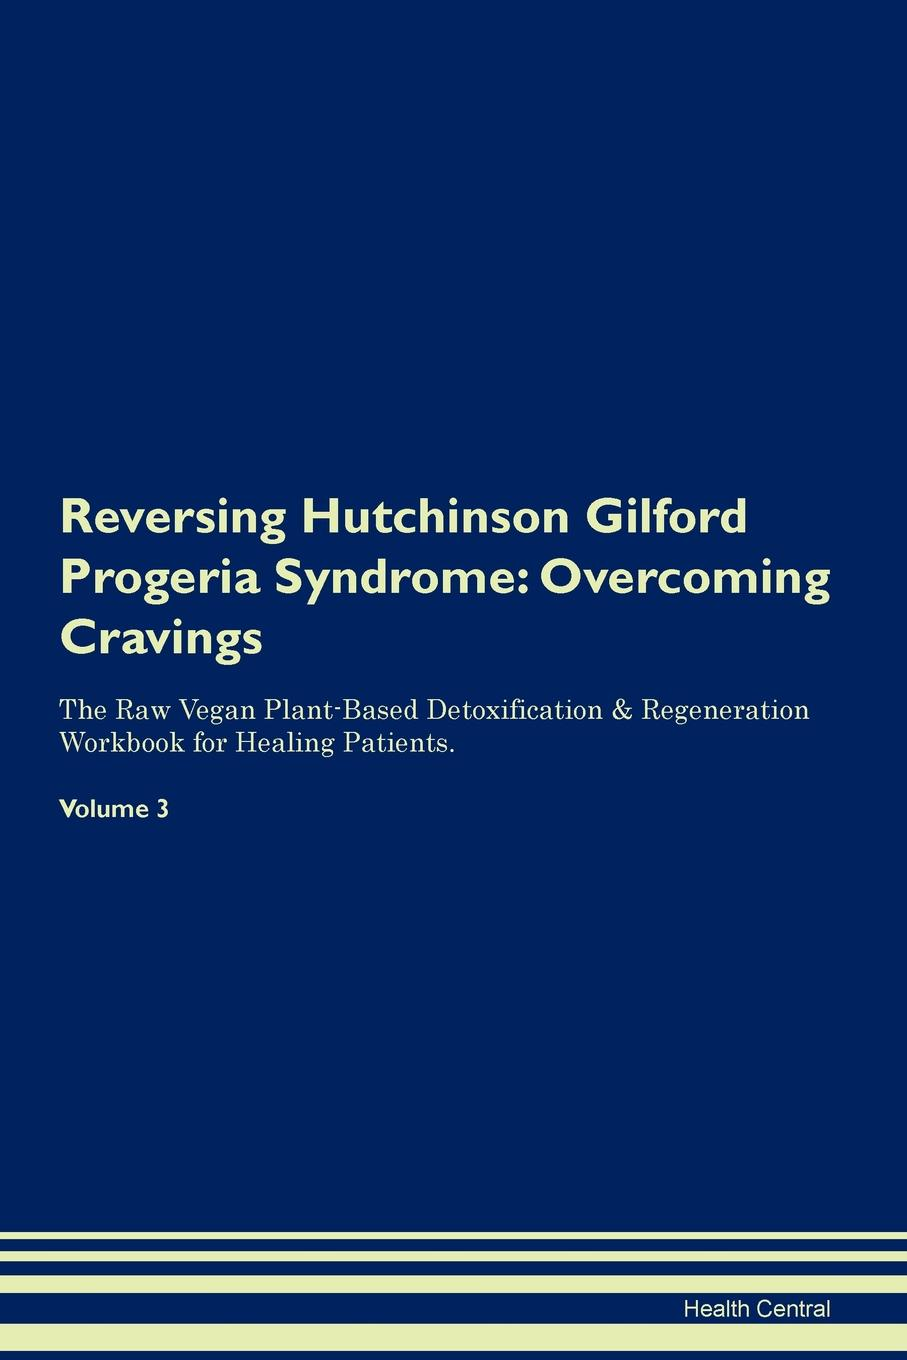 Health Central Reversing Hutchinson Gilford Progeria Syndrome. Overcoming Cravings The Raw Vegan Plant-Based Detoxification . Regeneration Workbook for Healing Patients. Volume 3 prevalance of metabolic syndrome in baghdad